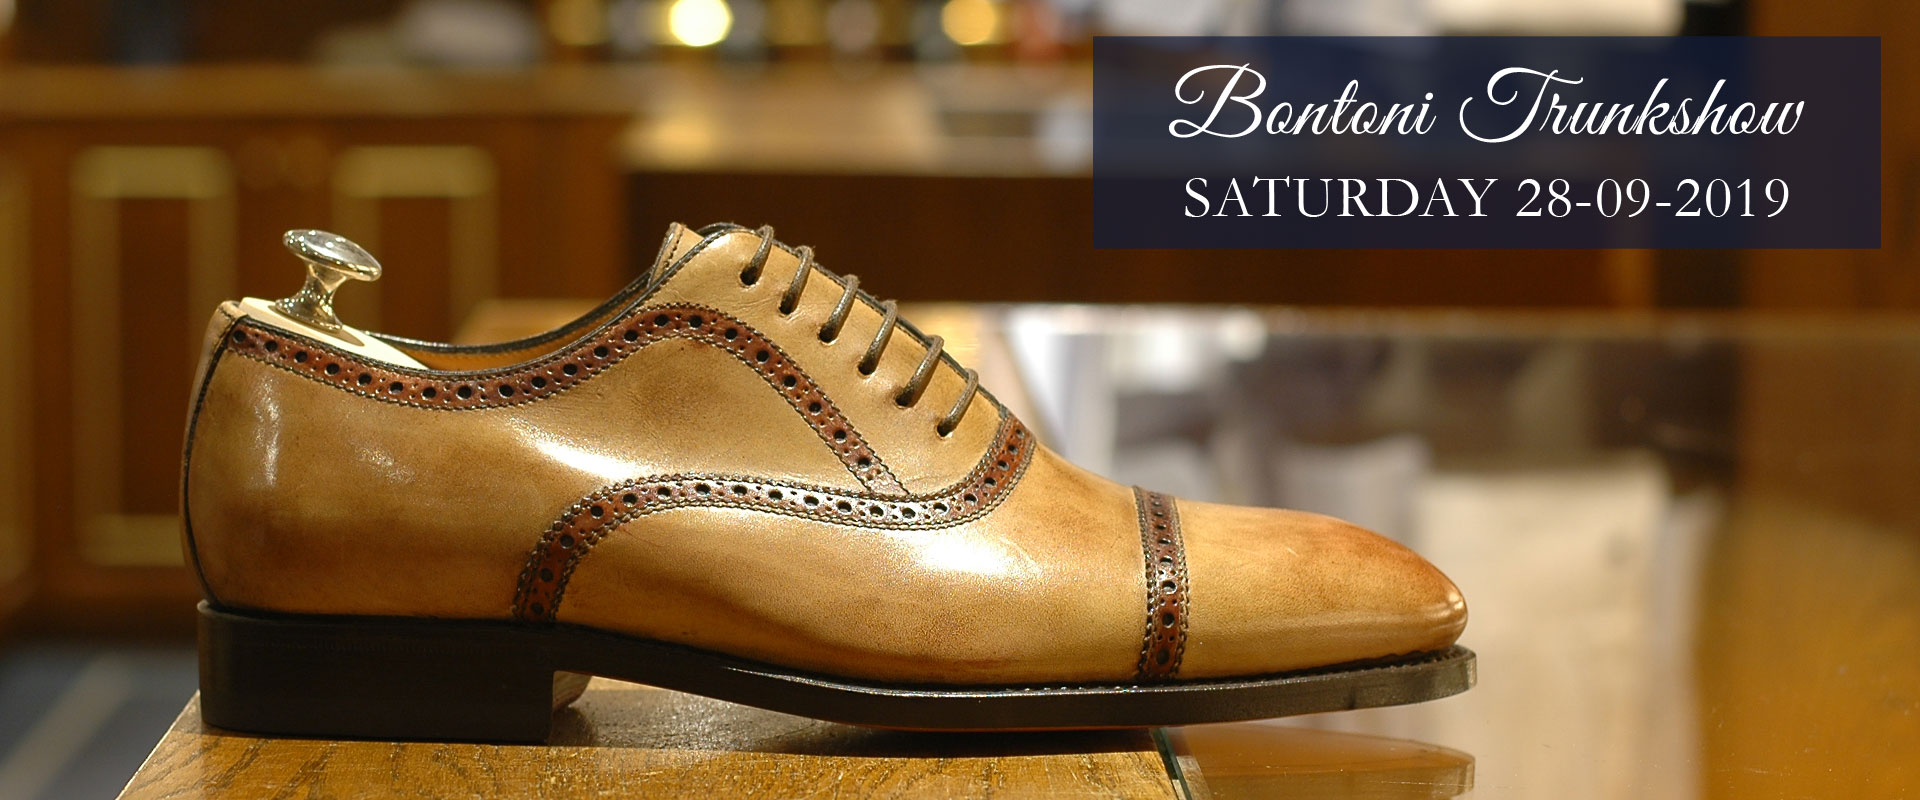 Bontoni Trunkshow